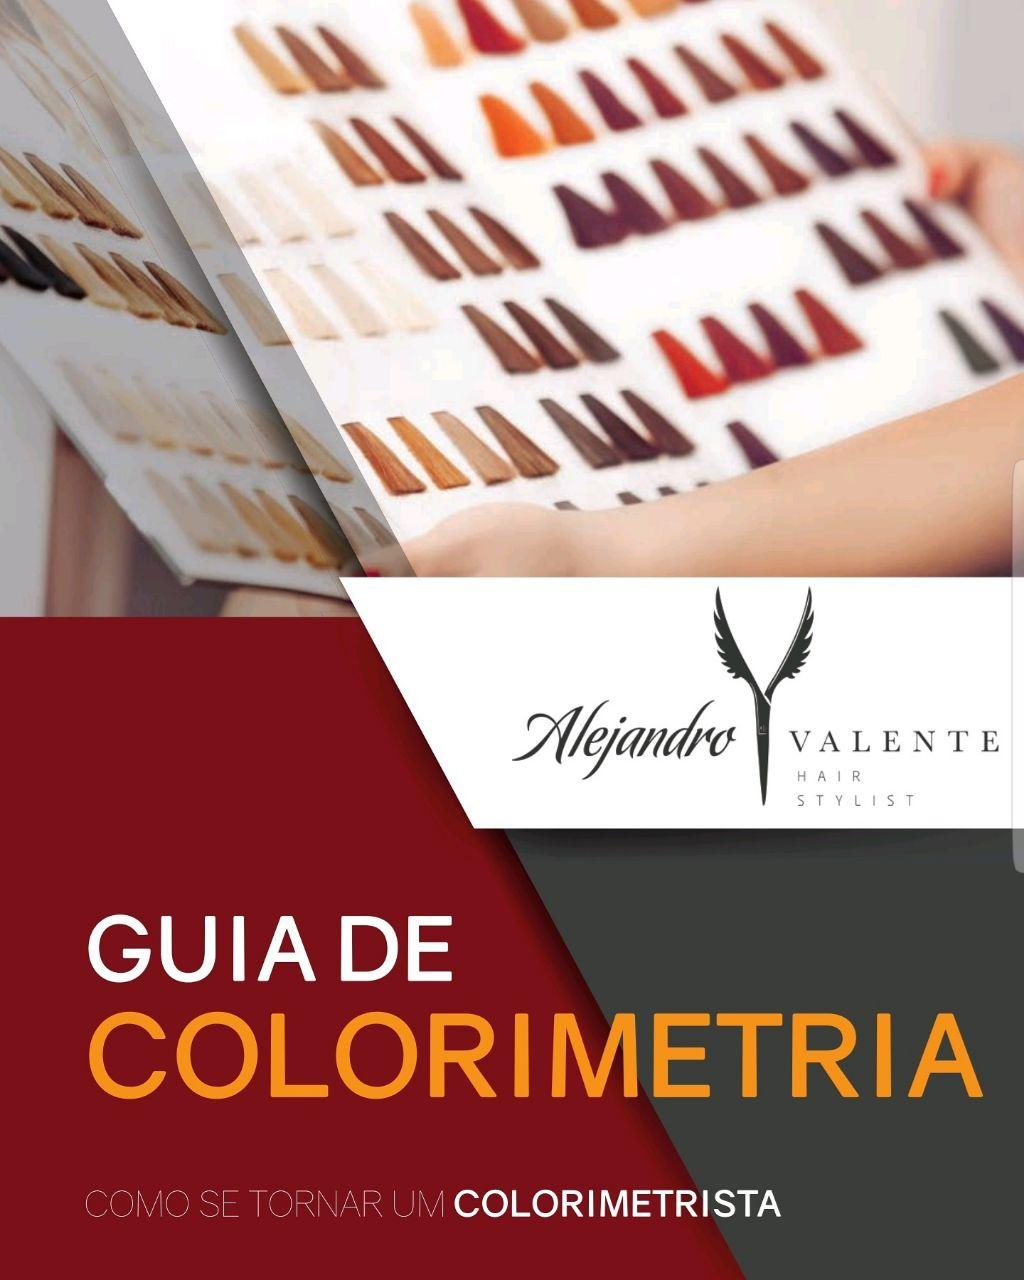 Ebook - Guia de Colorimetria capilar